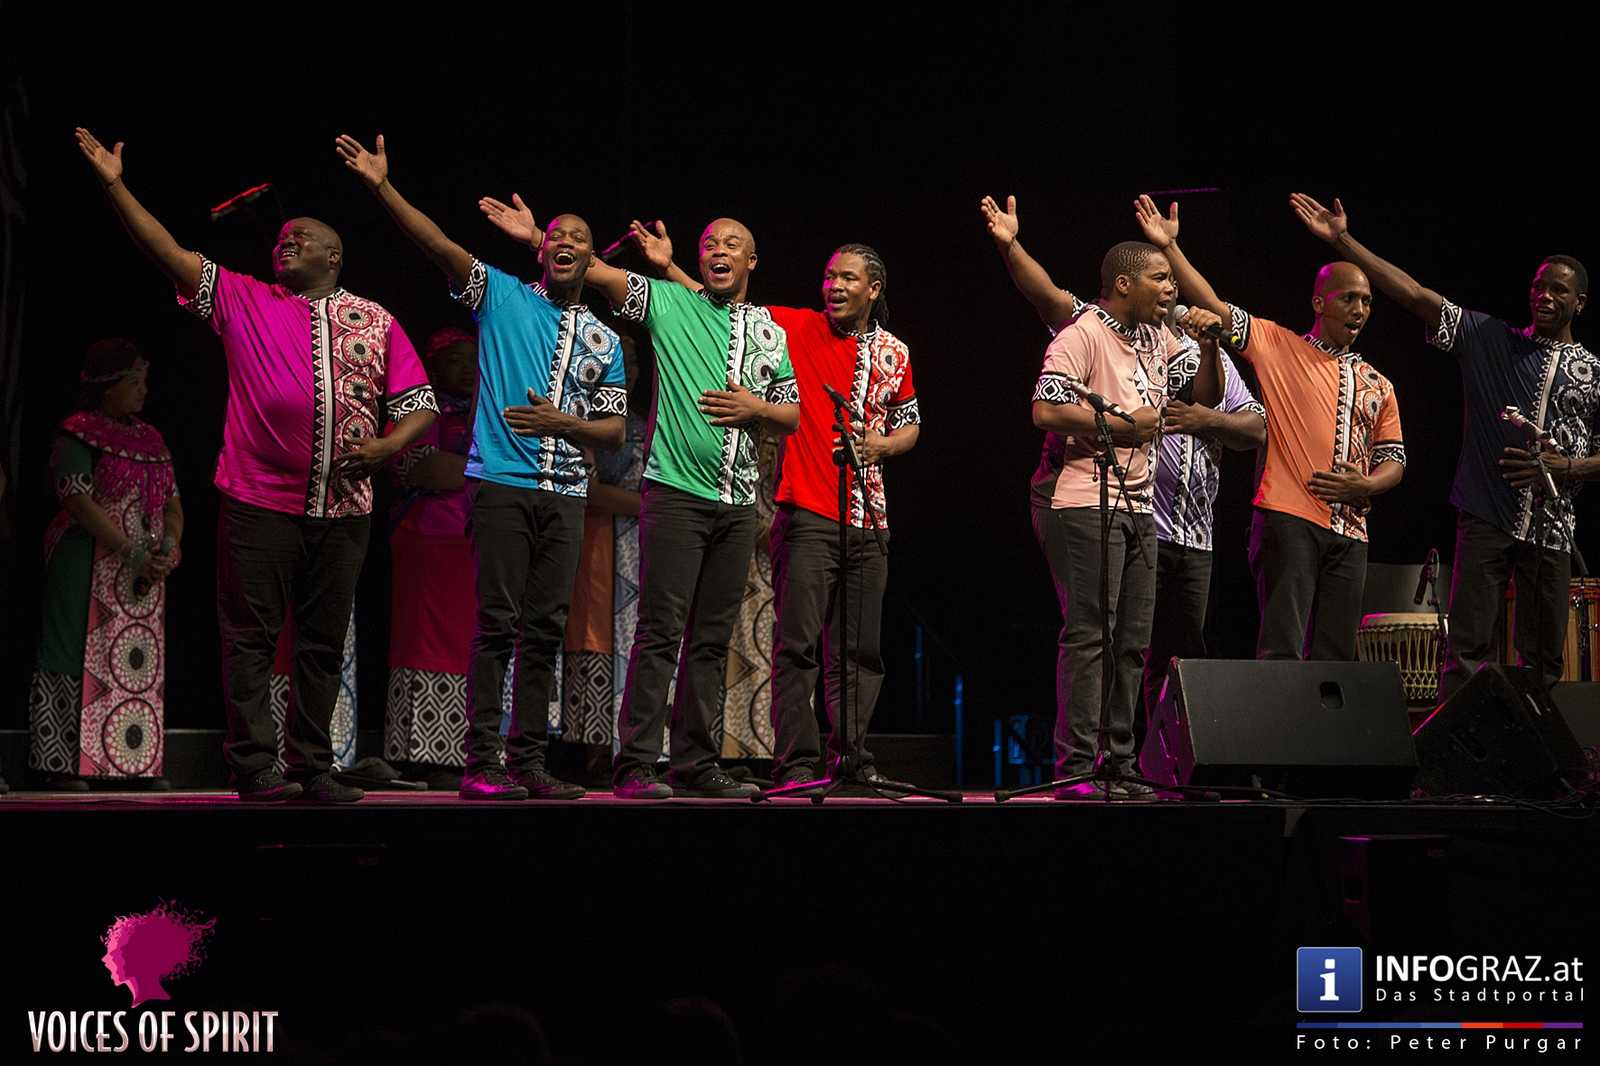 soweto gospel choir internationales chorfestival statdthalle graz voices of spirit eroeffnung festivals 2016 099